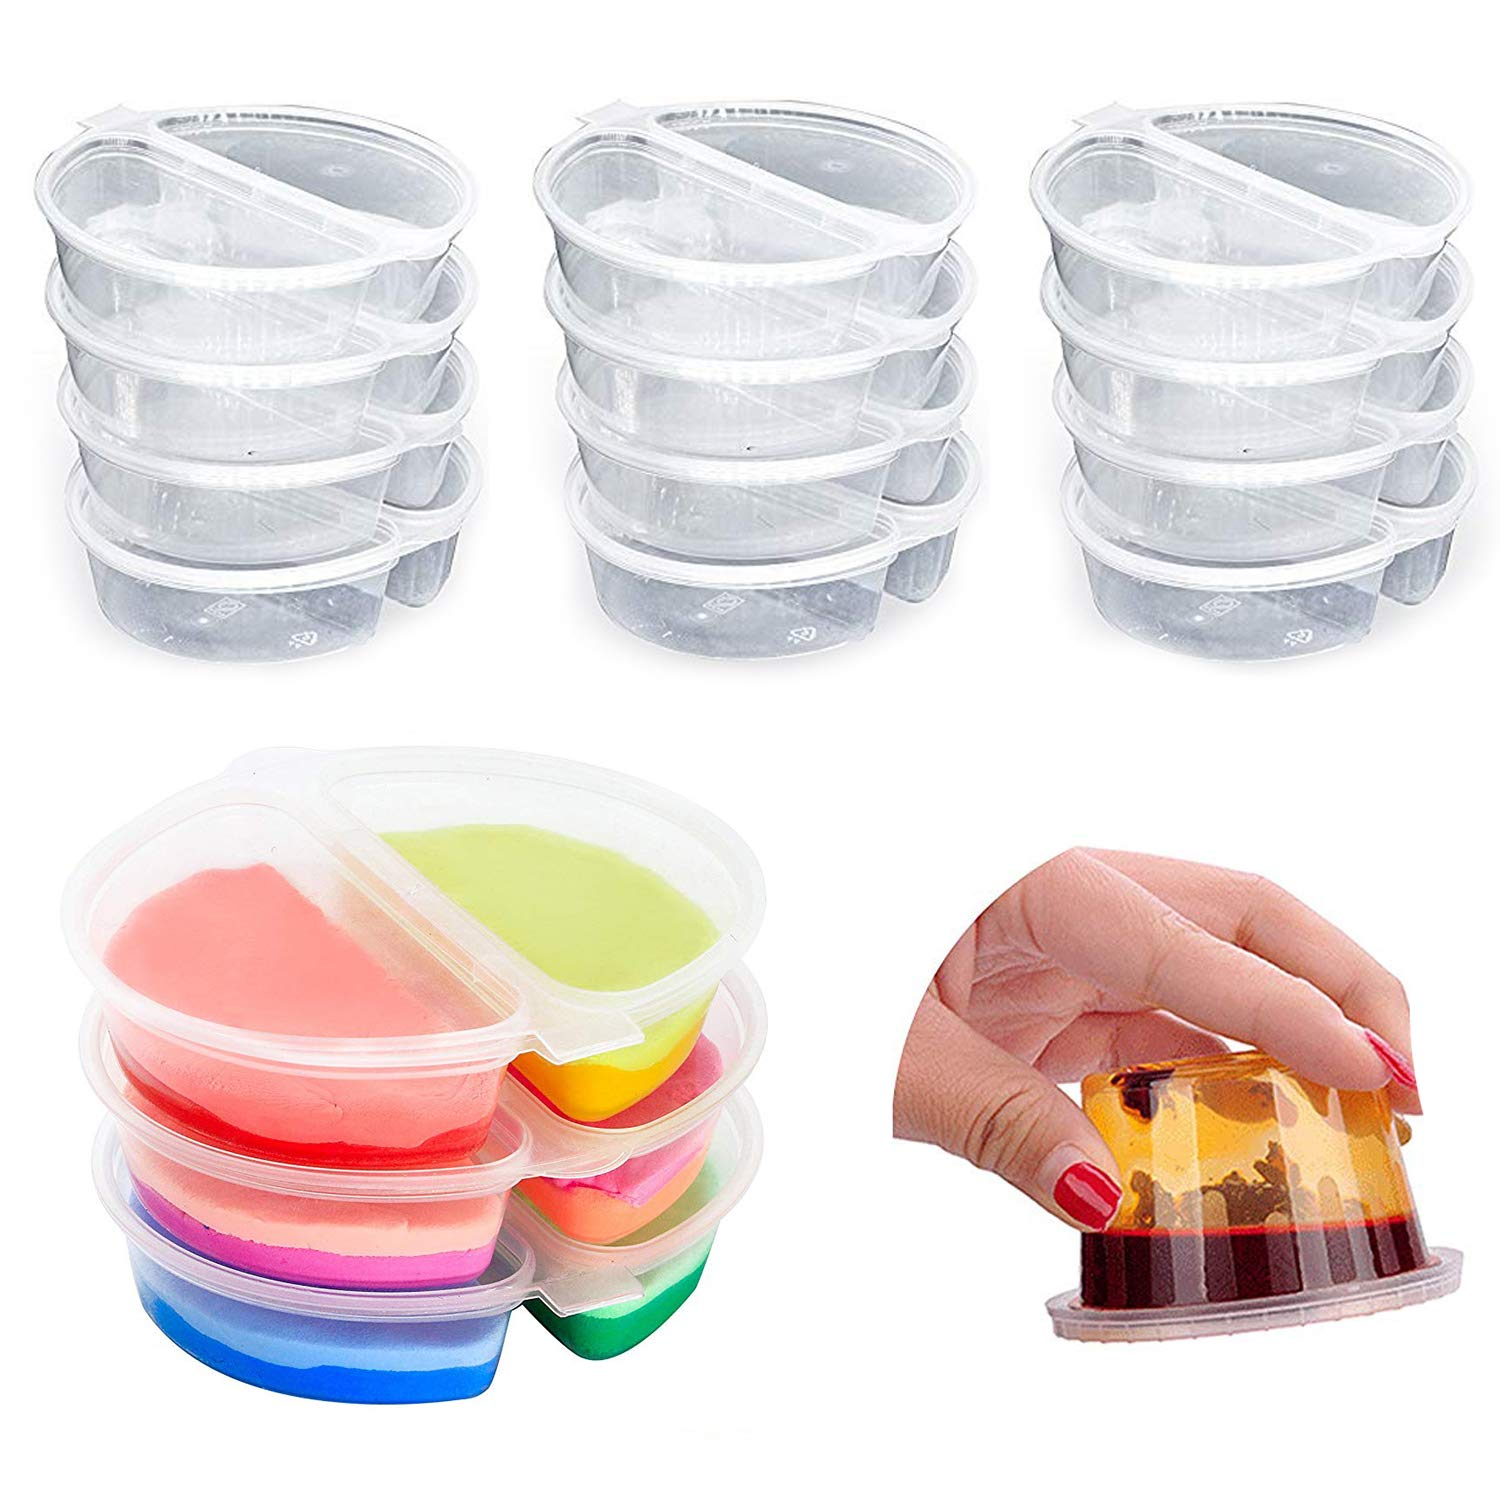 30 Pack Two-Compartment Condiment Containers with Attached Lid Reusable for Work School Home Travel